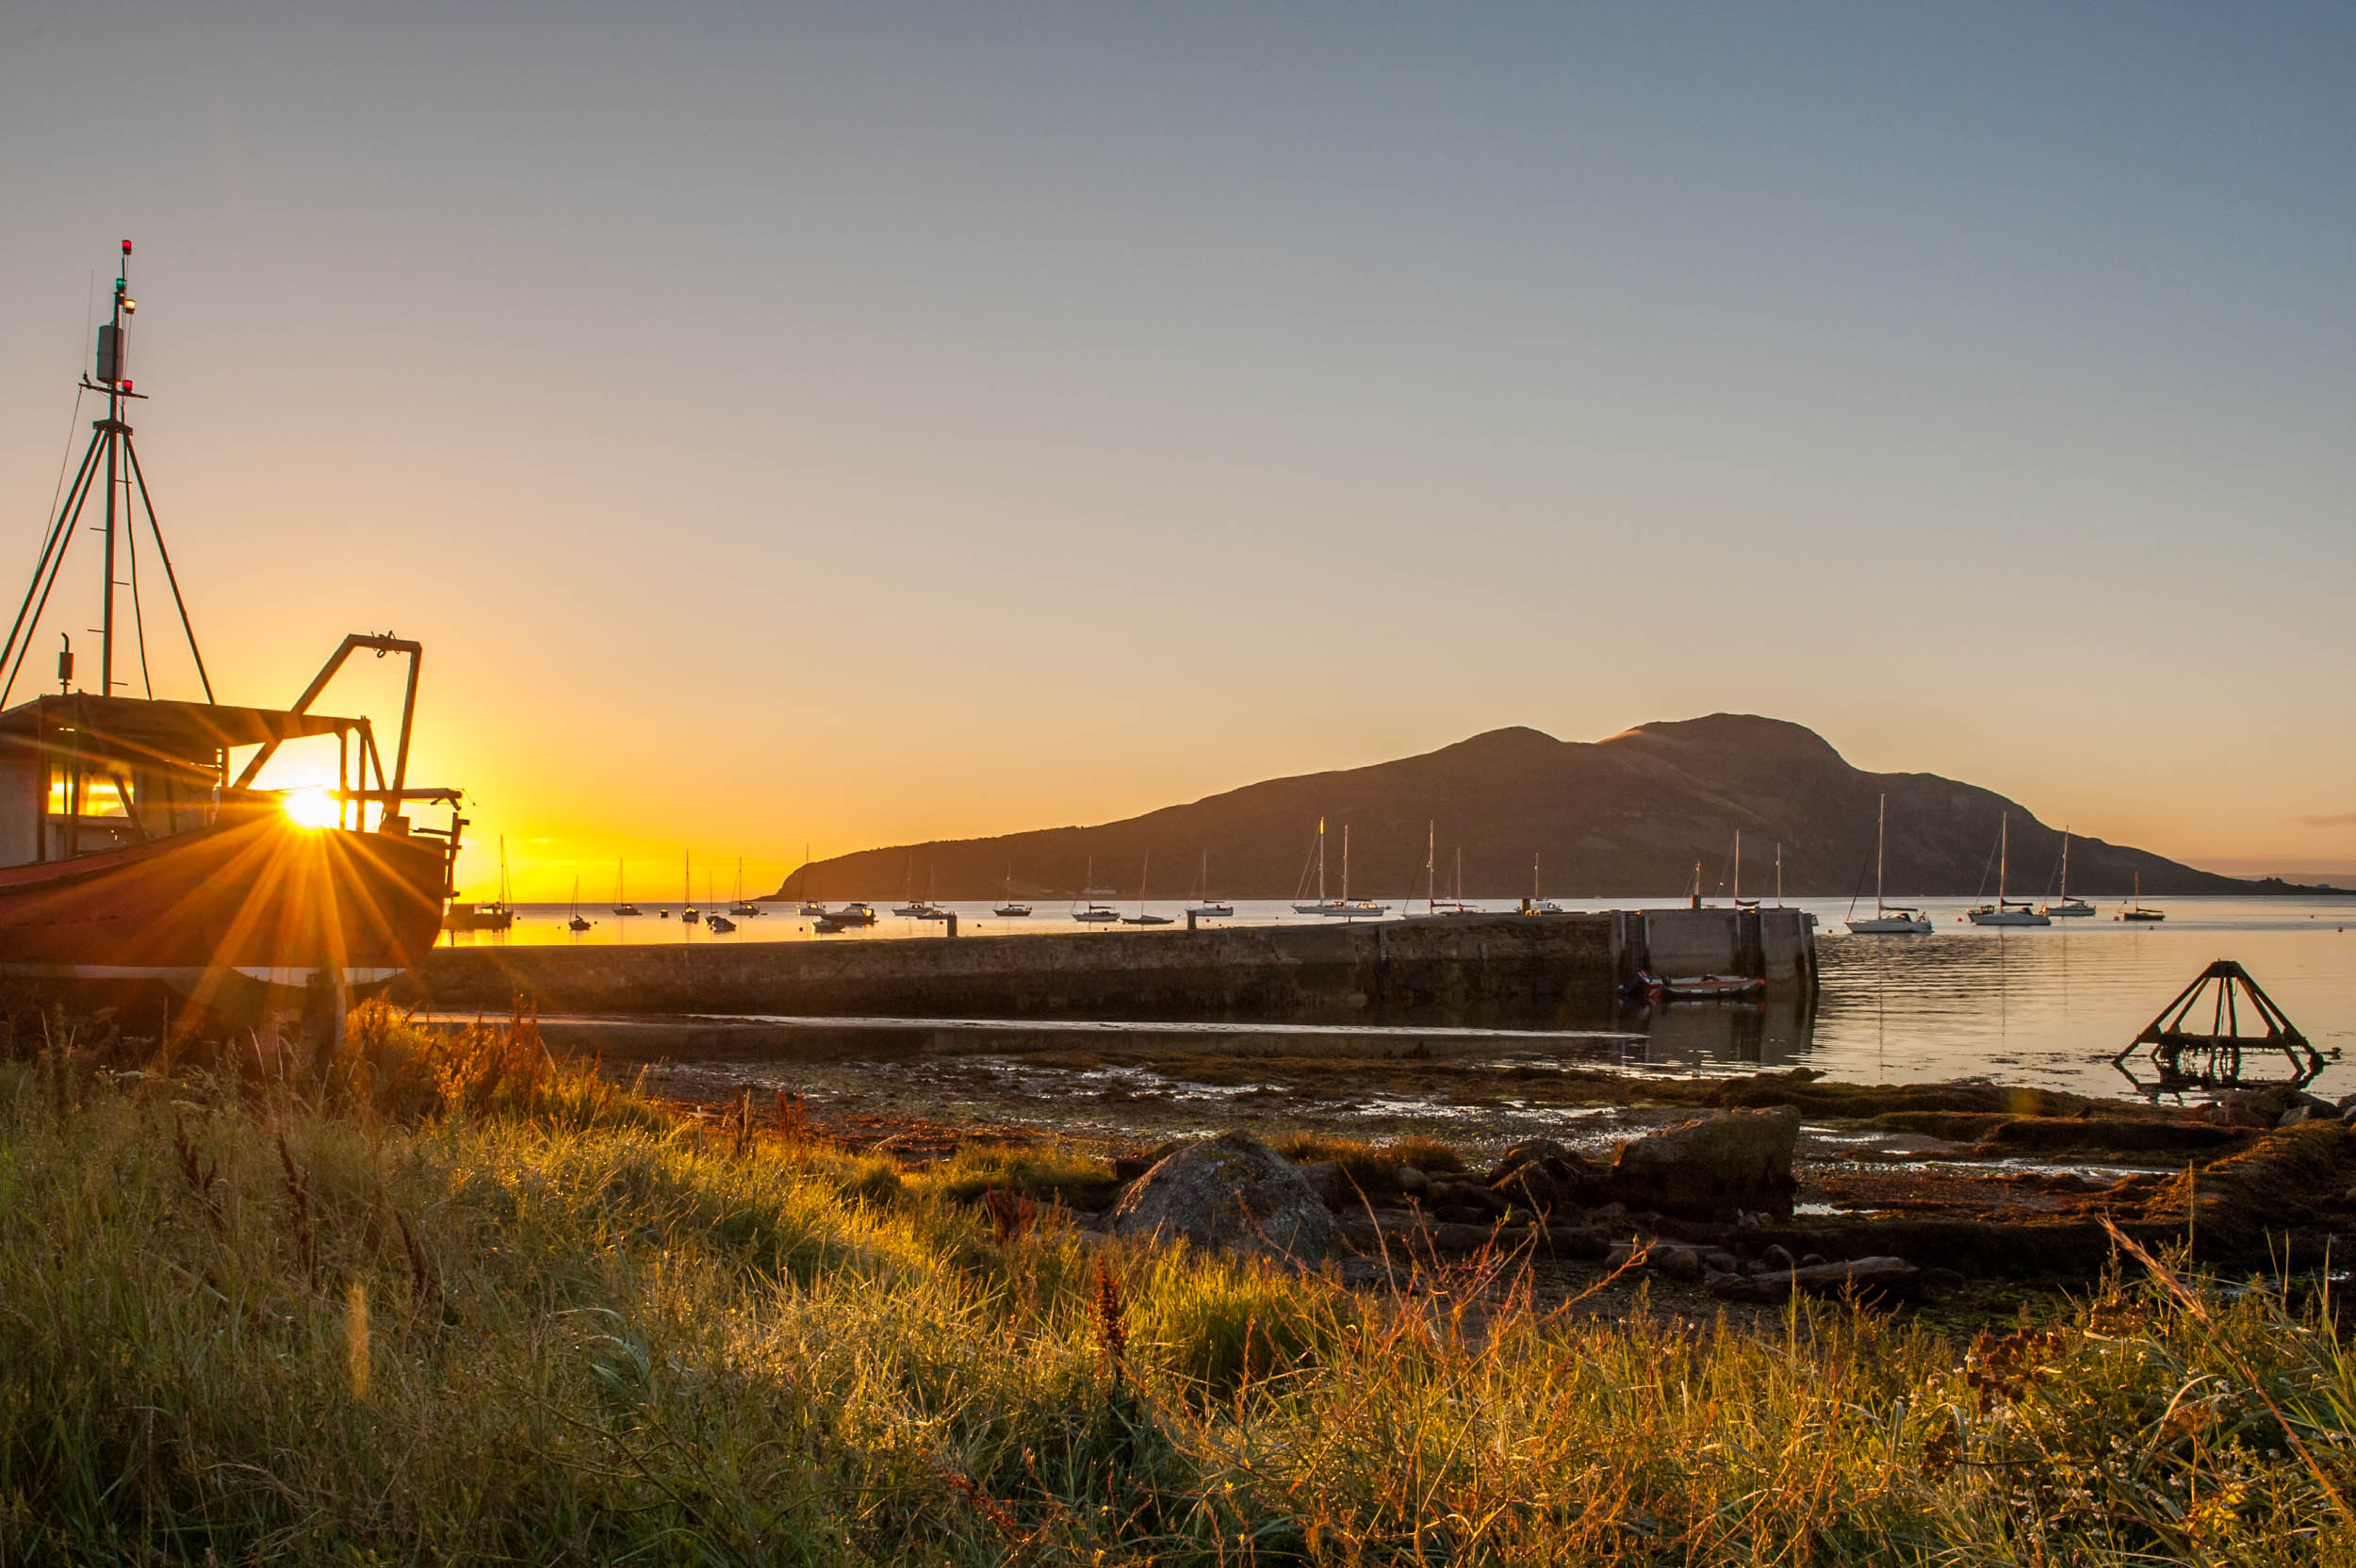 Sunrise in Lamlash, Arran